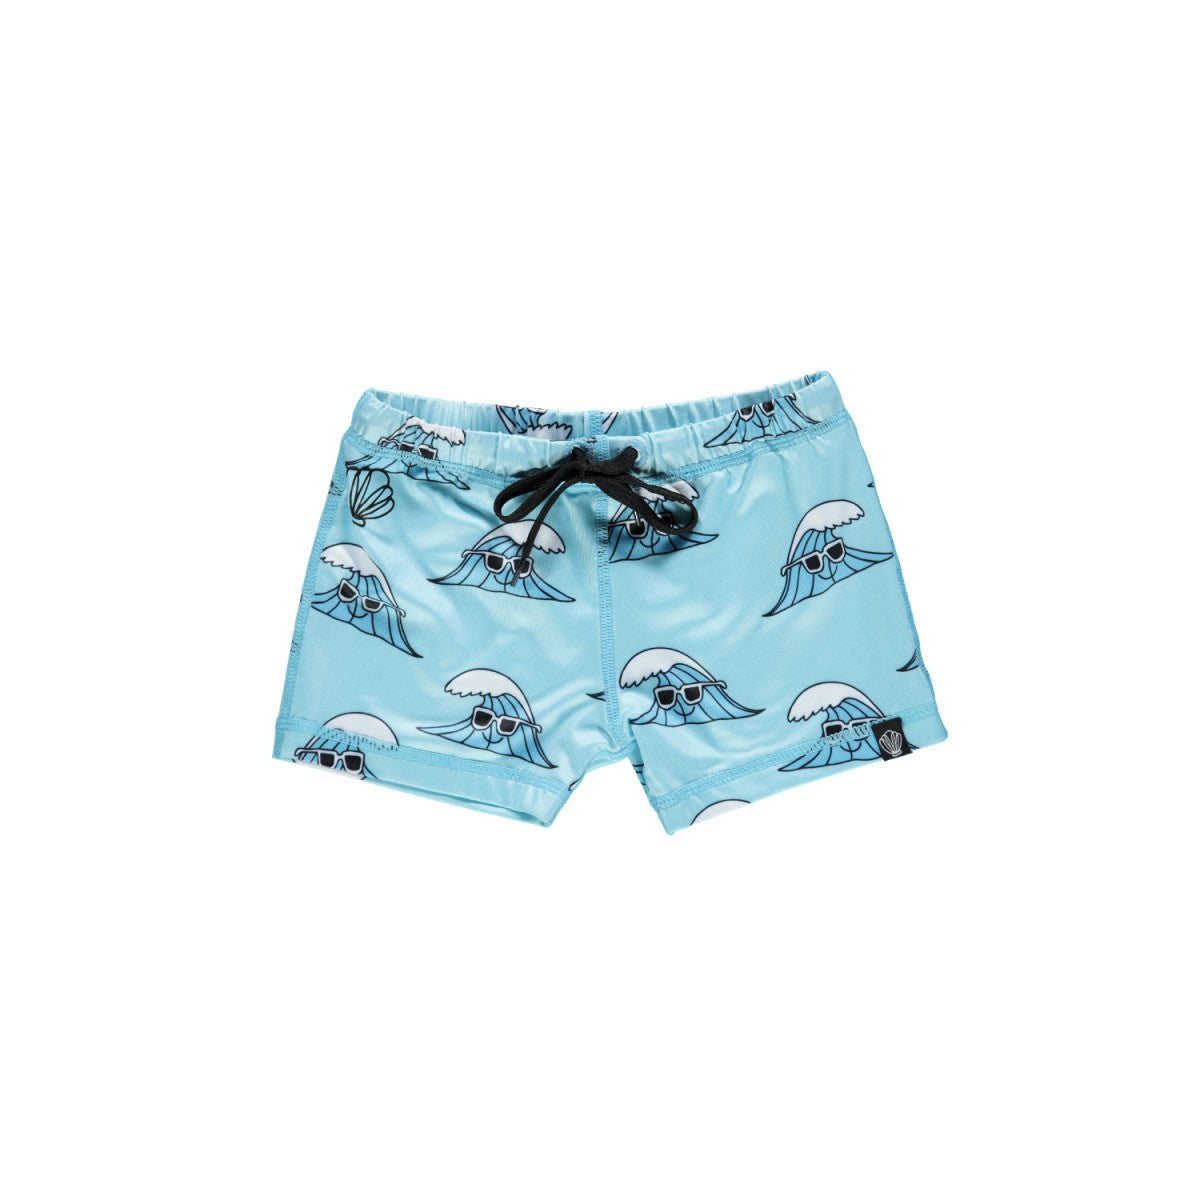 Beach & Bandits Beach & Bandits Surf's Up Swimshort - Pearls & Swines